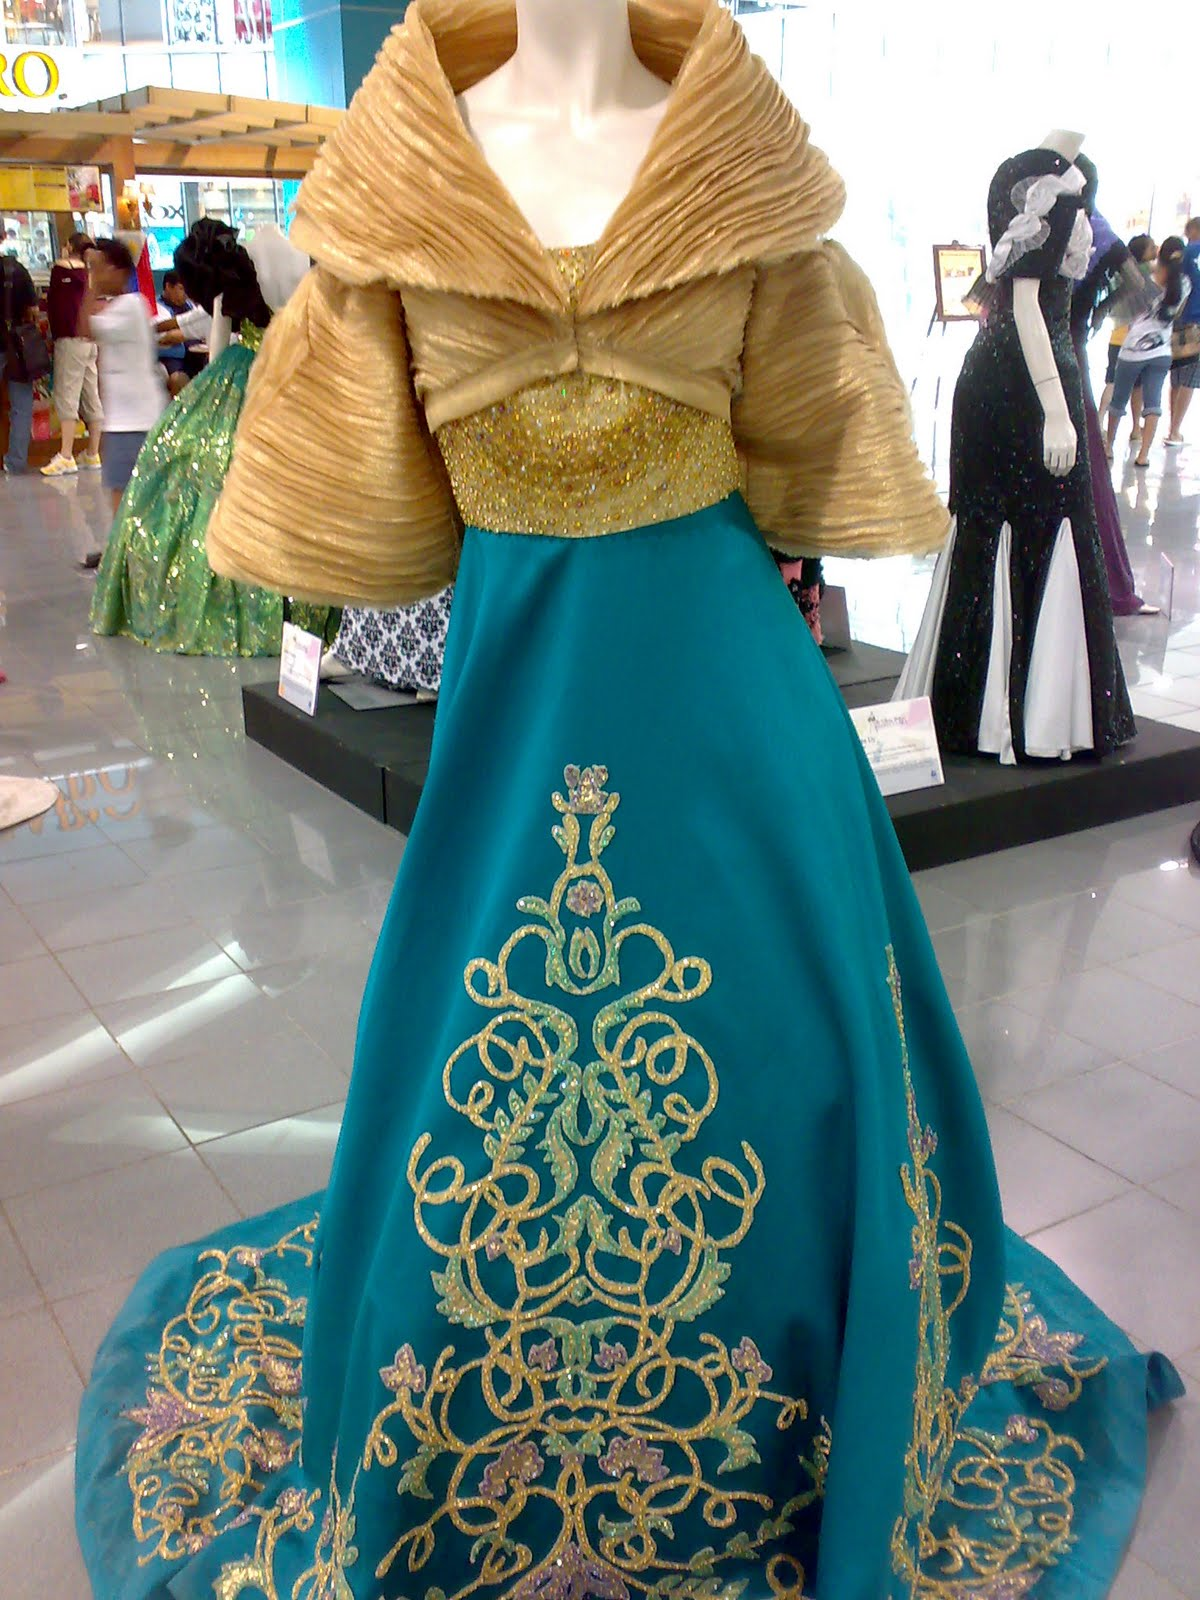 Where to buy dresses online philippines